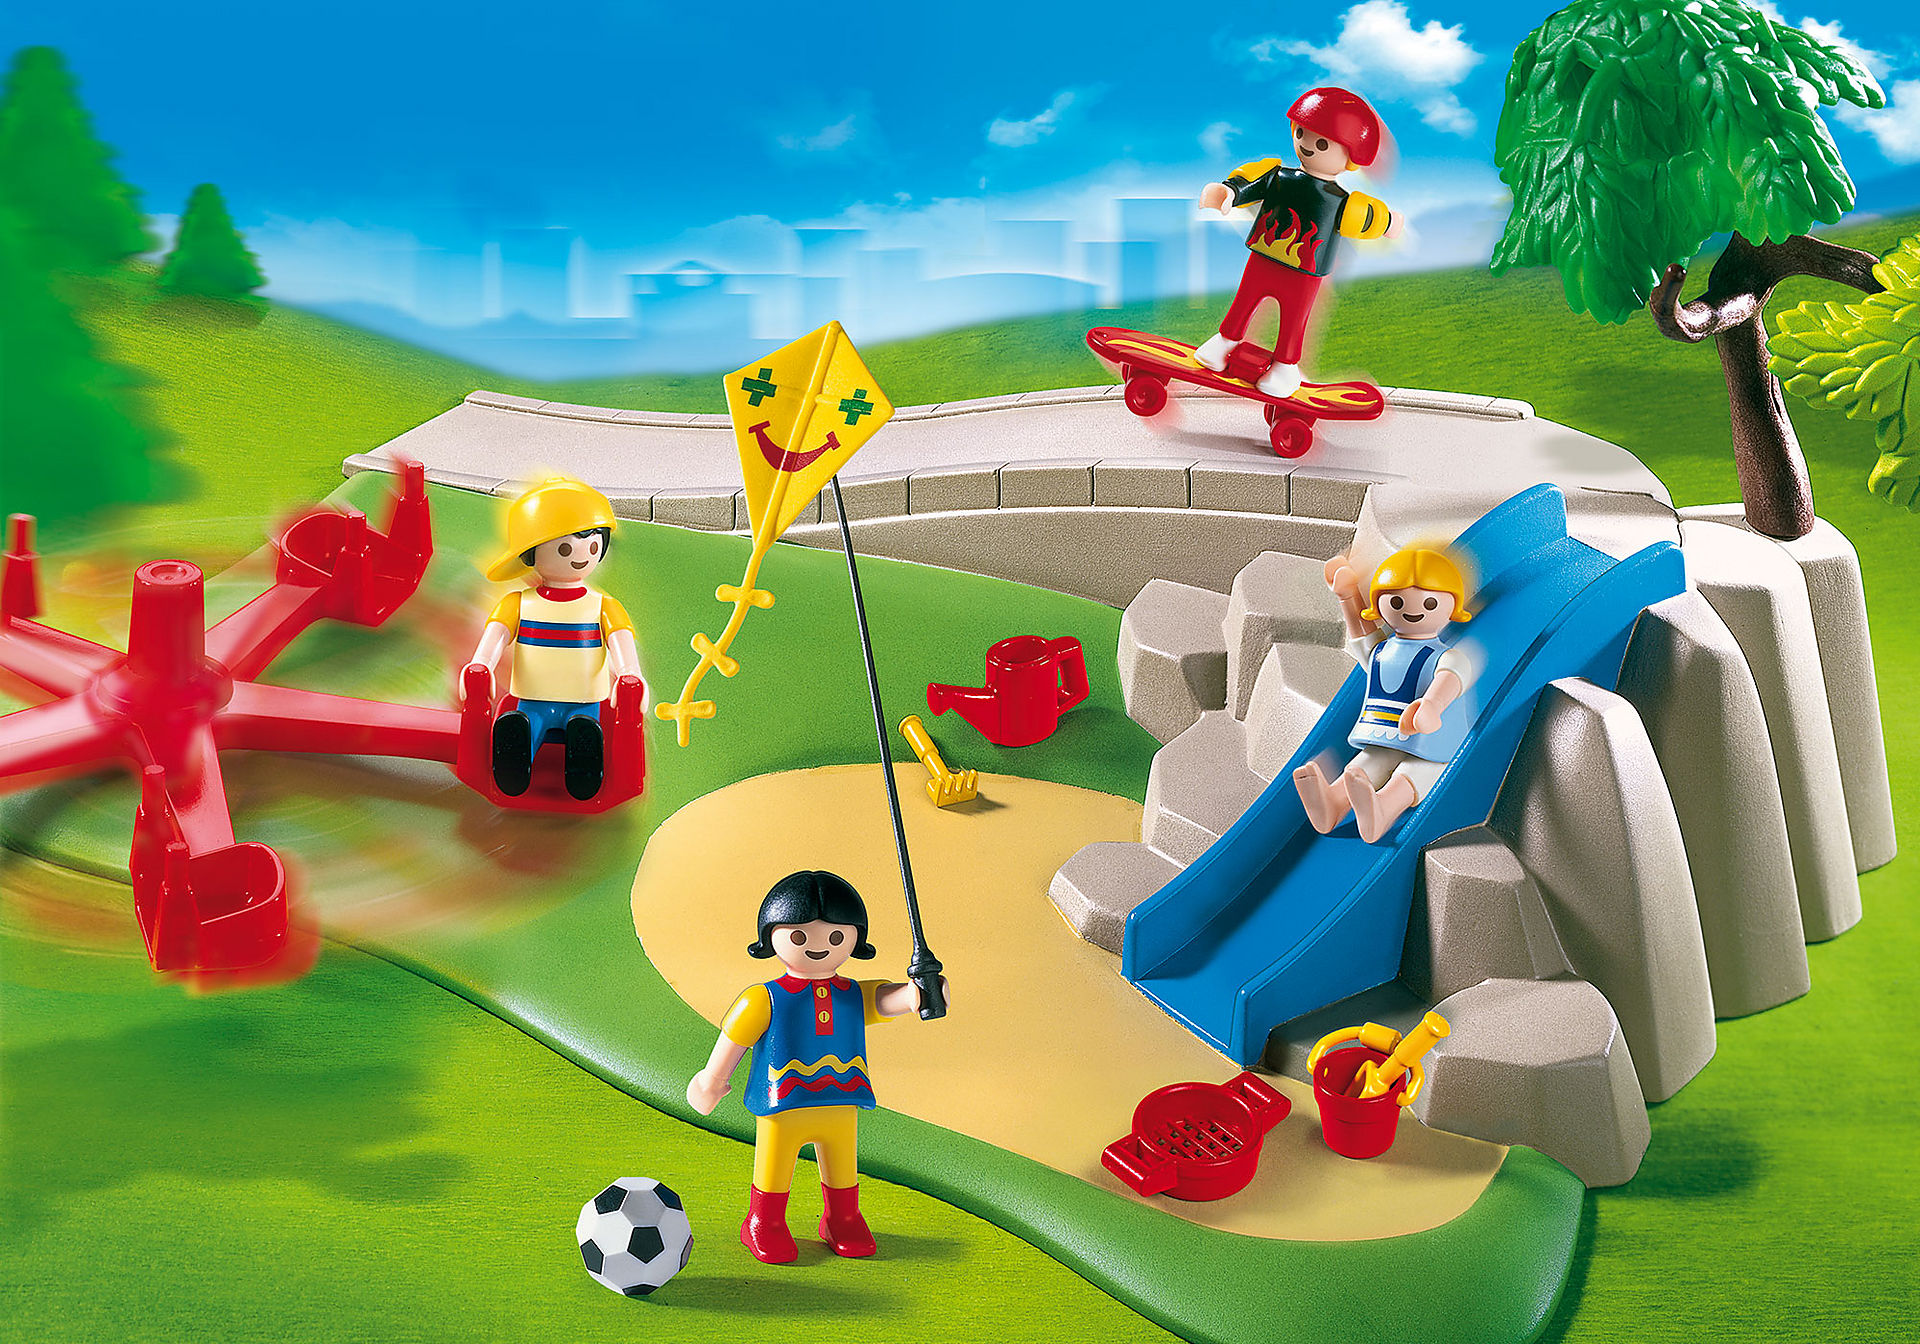 http://media.playmobil.com/i/playmobil/4132_product_detail/SuperSet Spielplatz